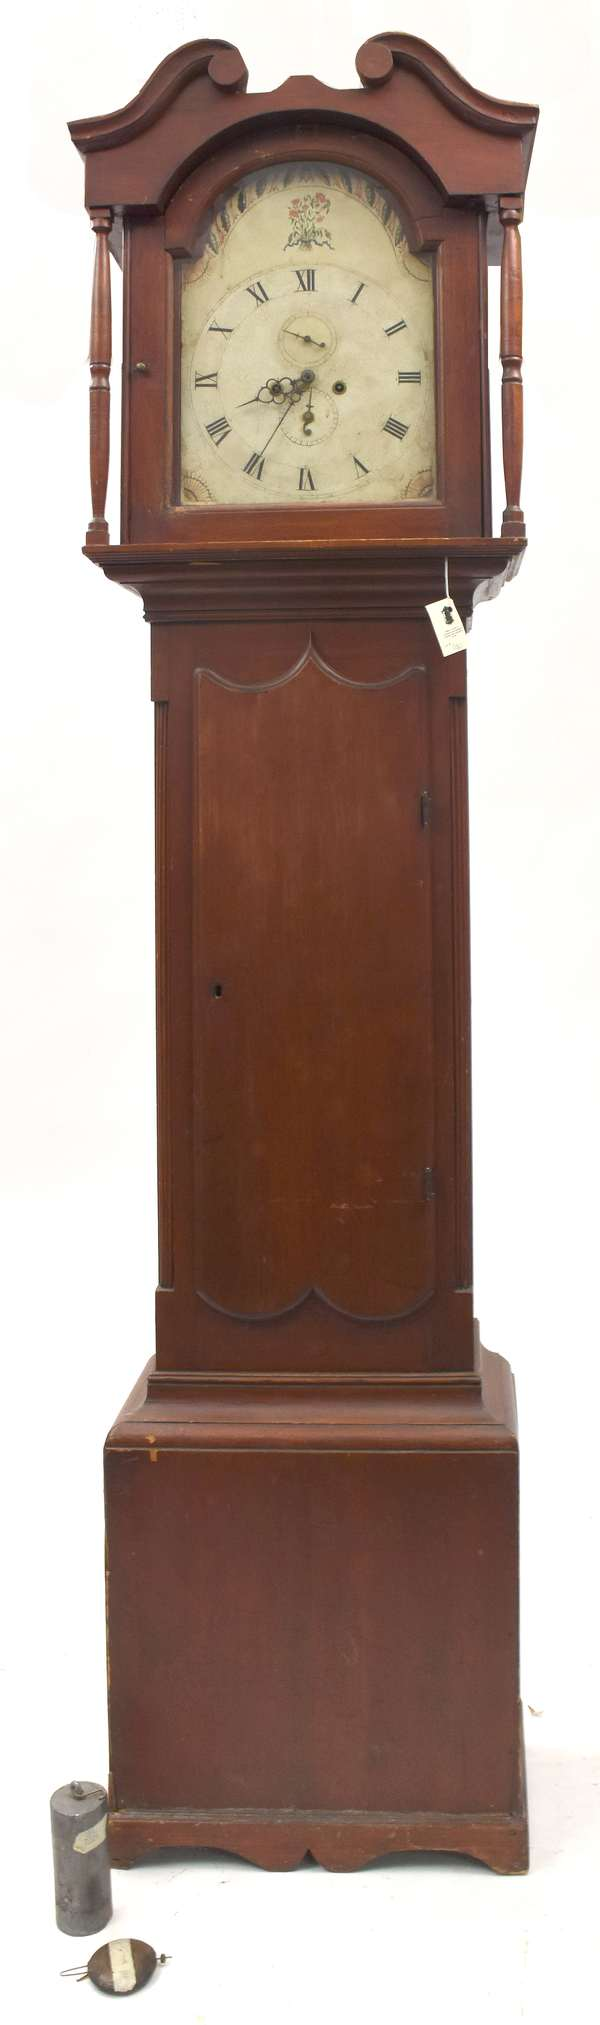 """18th C. Chippendale Grandfather clock with brass works, painted dial case on bracket base in old surface, 85""""H."""